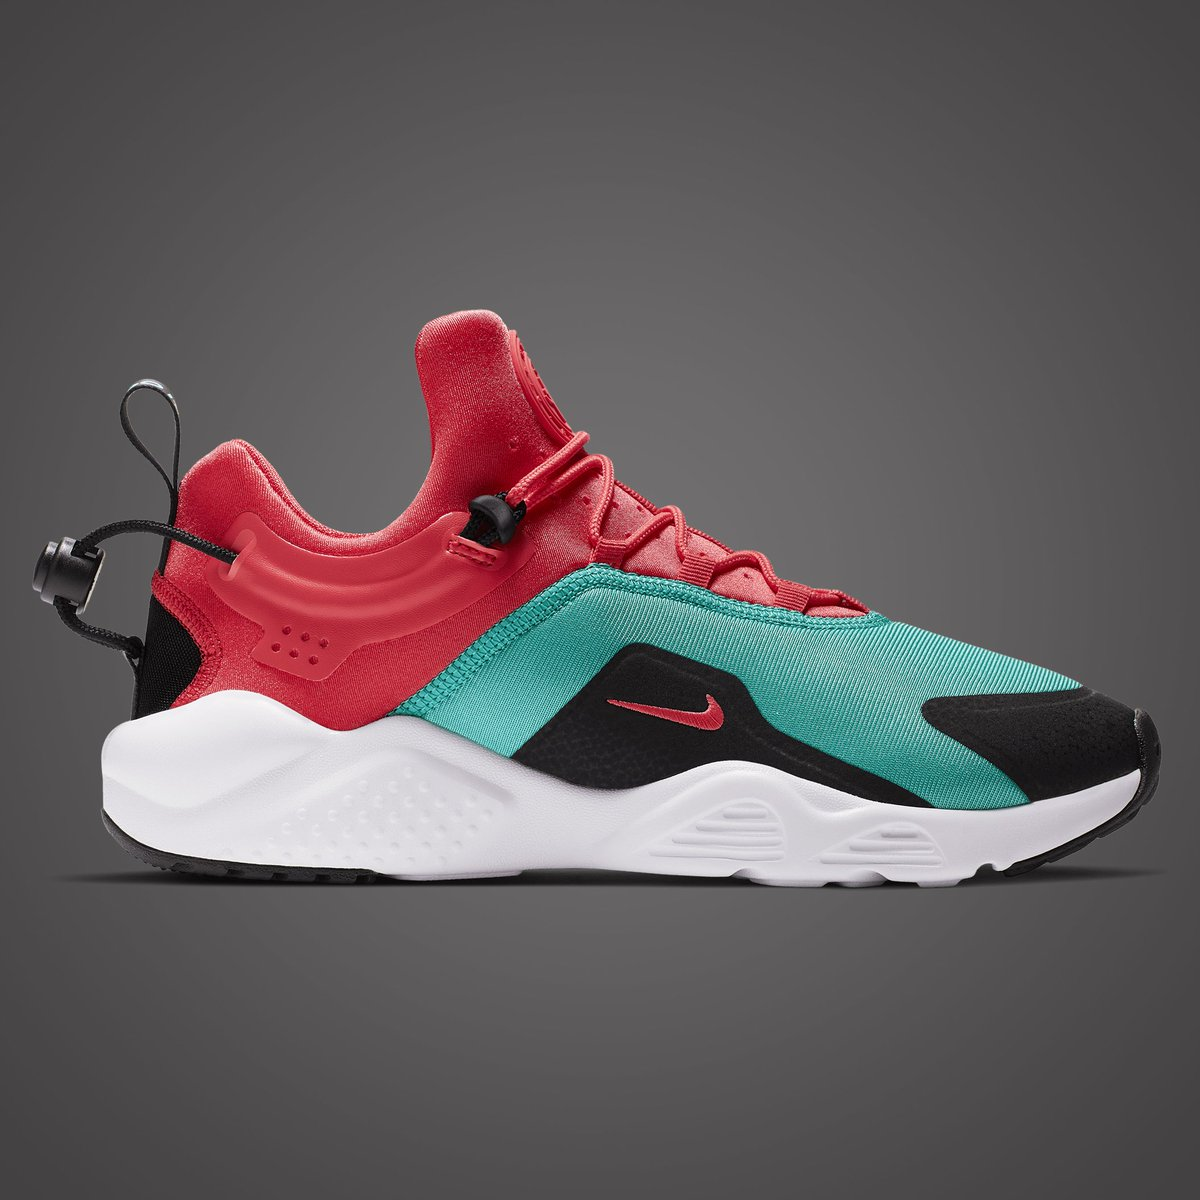 052328992b13 Nike Air Huarache City Move Women s (5.5-11)  90 AO3172-300